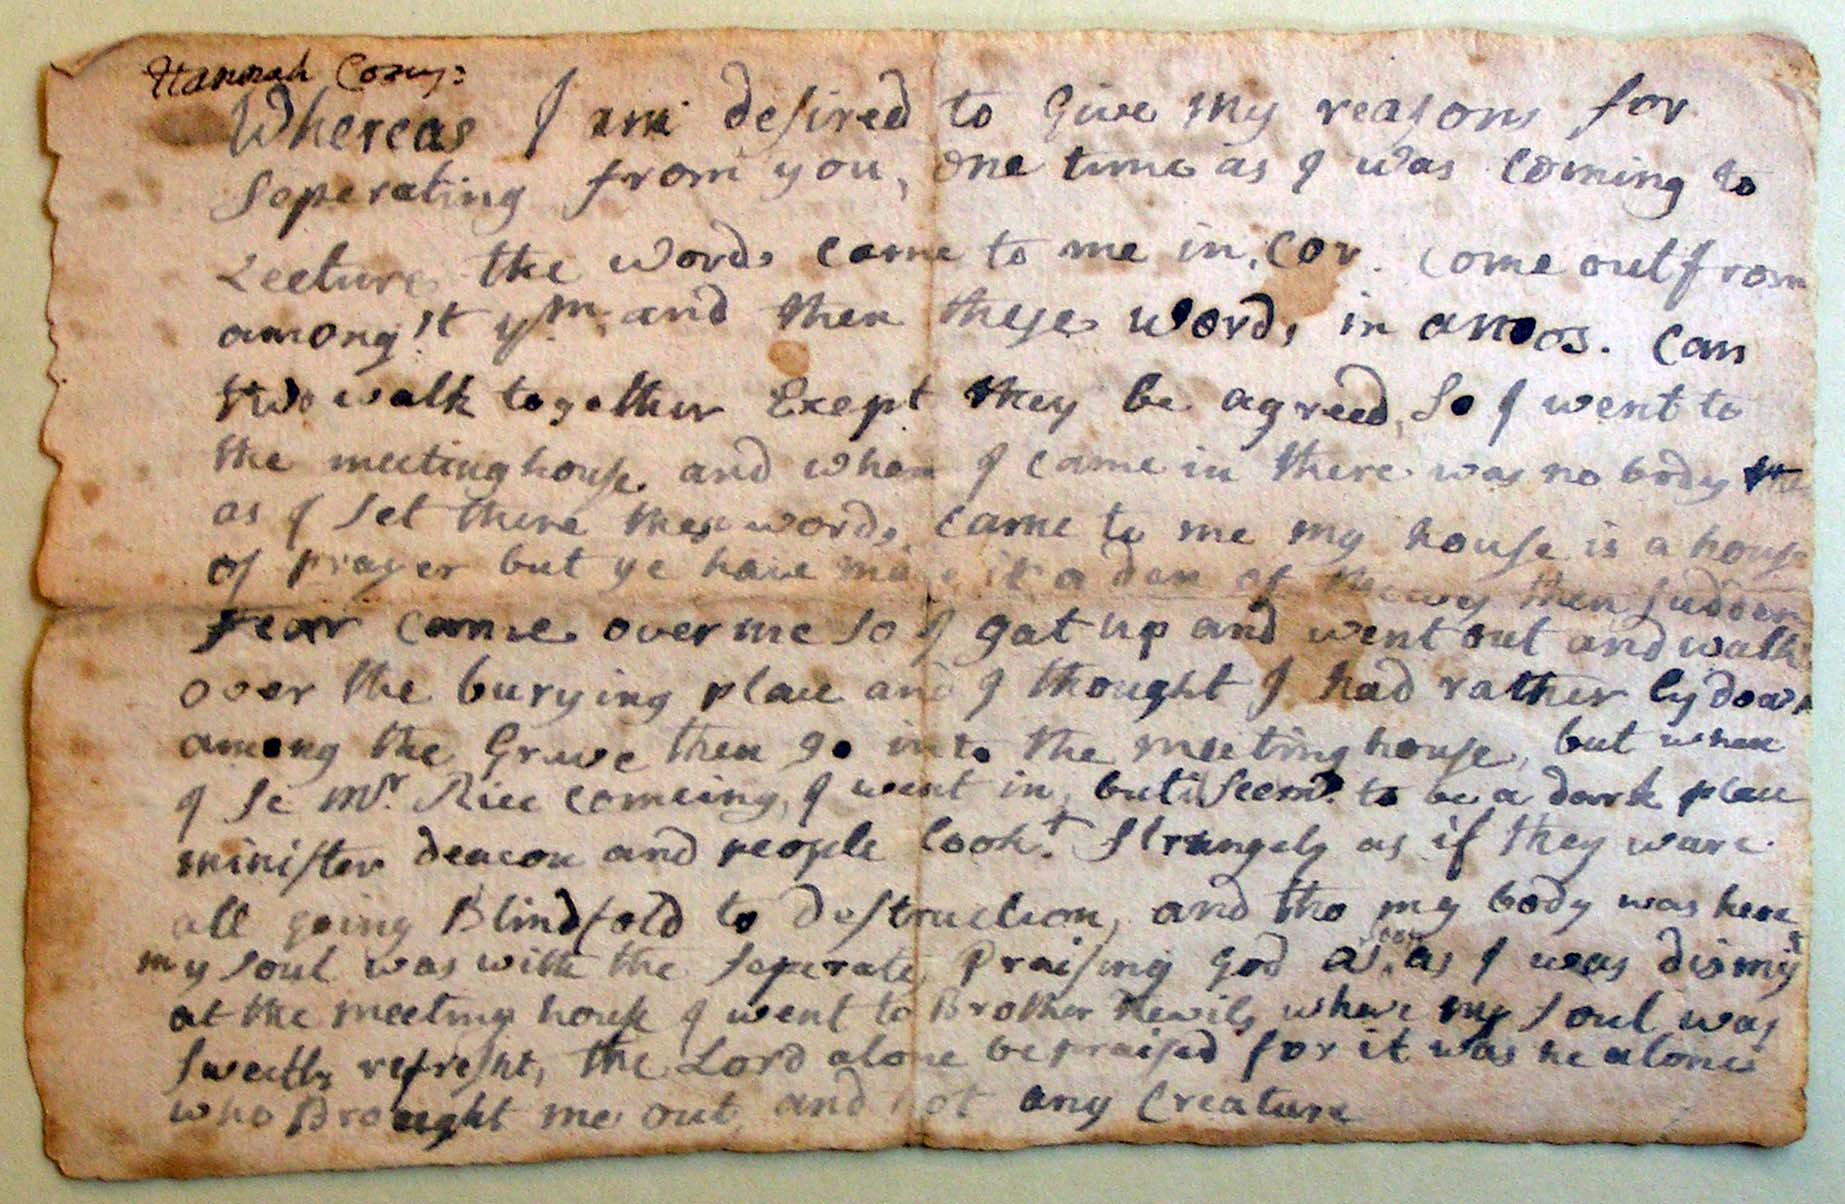 Testimony of Hannah Corey, April 5, 1749, Sturbridge, Mass., Separatist Congregational Church Records, 1745–1762, Congregational Library, Boston (available online at  NEHH )